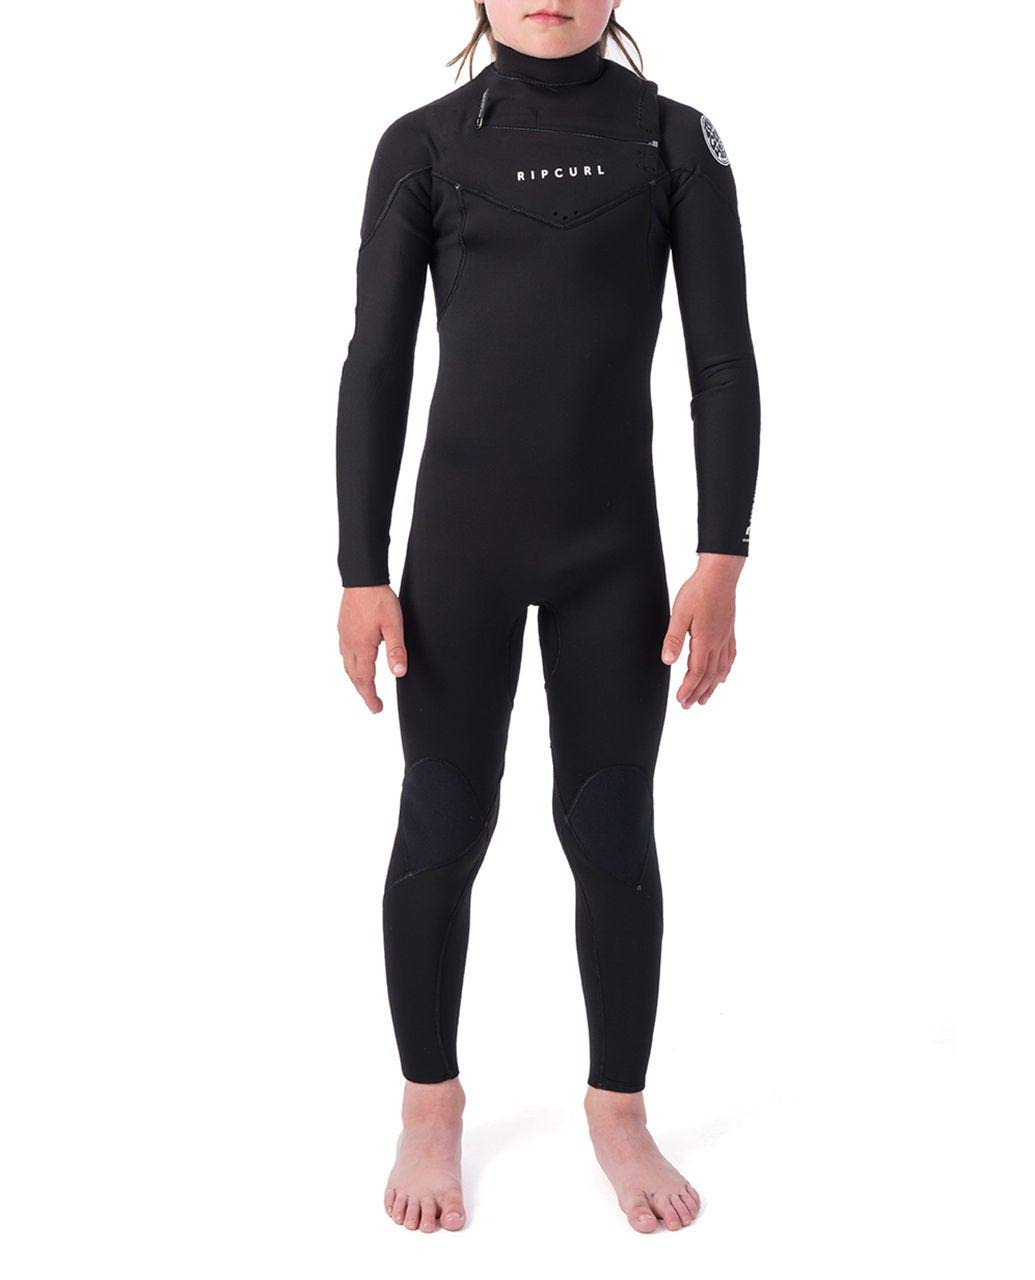 Rip Curl Dawn Patrol Wetsuit   Kid's Neoprene Full Suit Chest Zip Wetsuit For Surfing, Watersports, Swimming, Snorkeling   Designed for Durability   3/2 mm